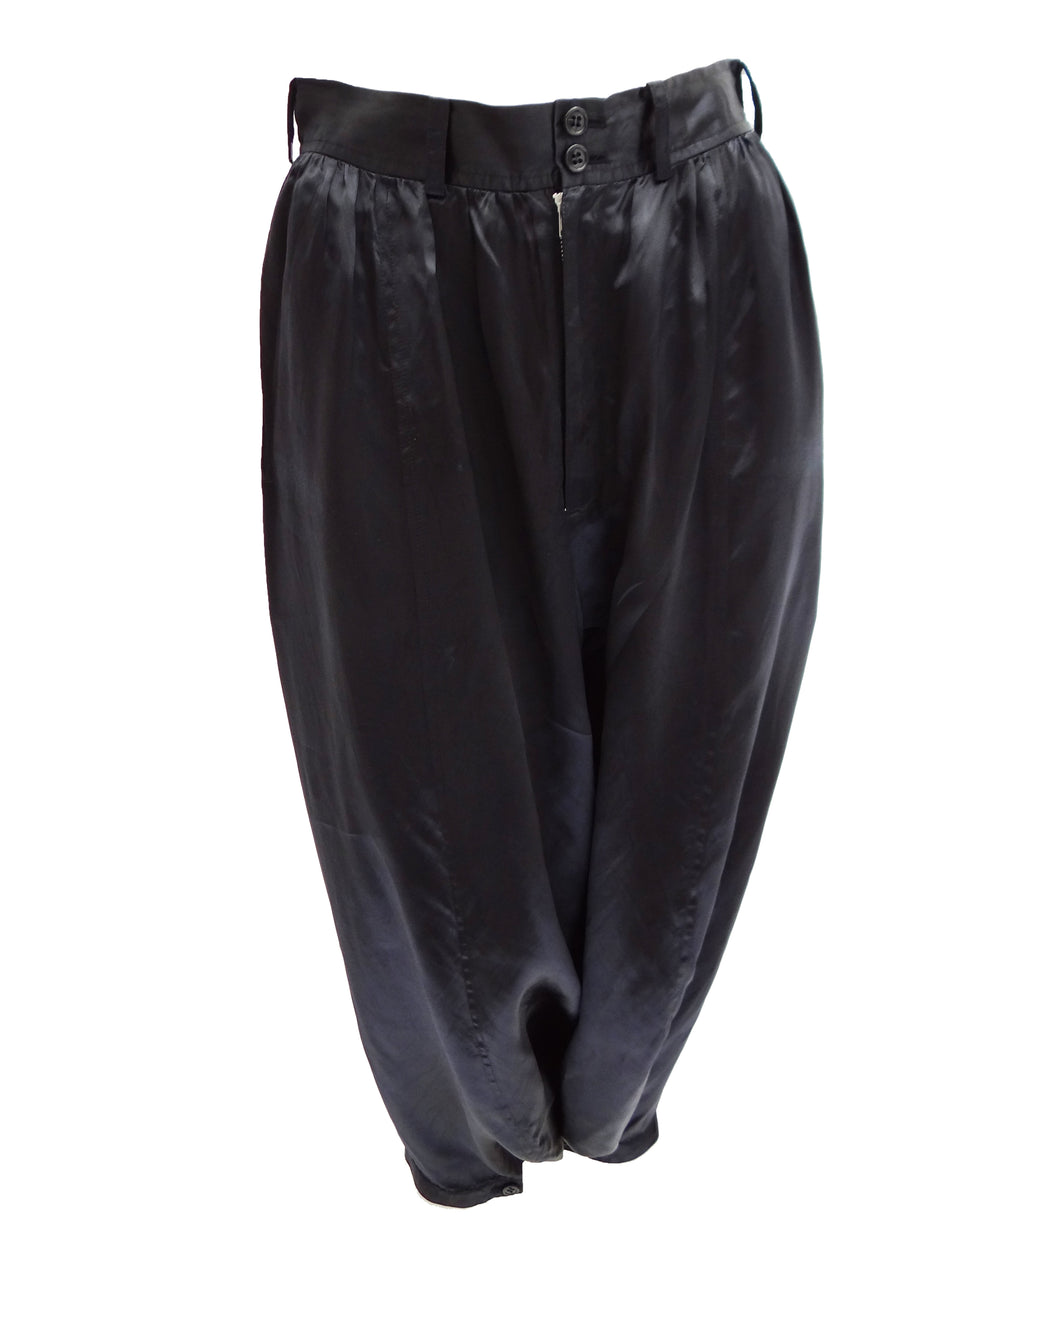 Comme des Garcons Black Satin Harem Trousers, UK10